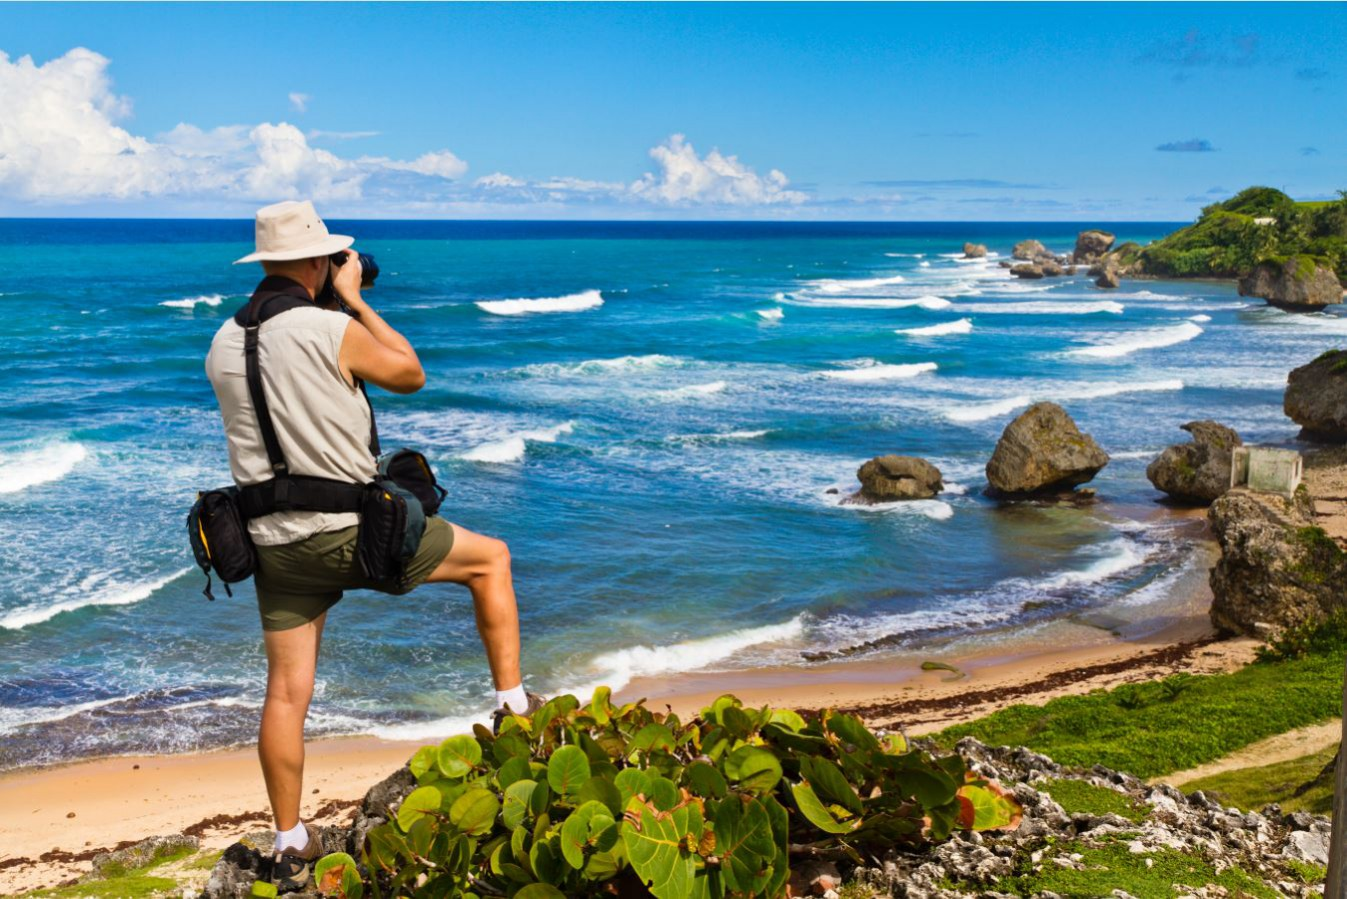 Hiking in Barbados - Things to do in Barbados